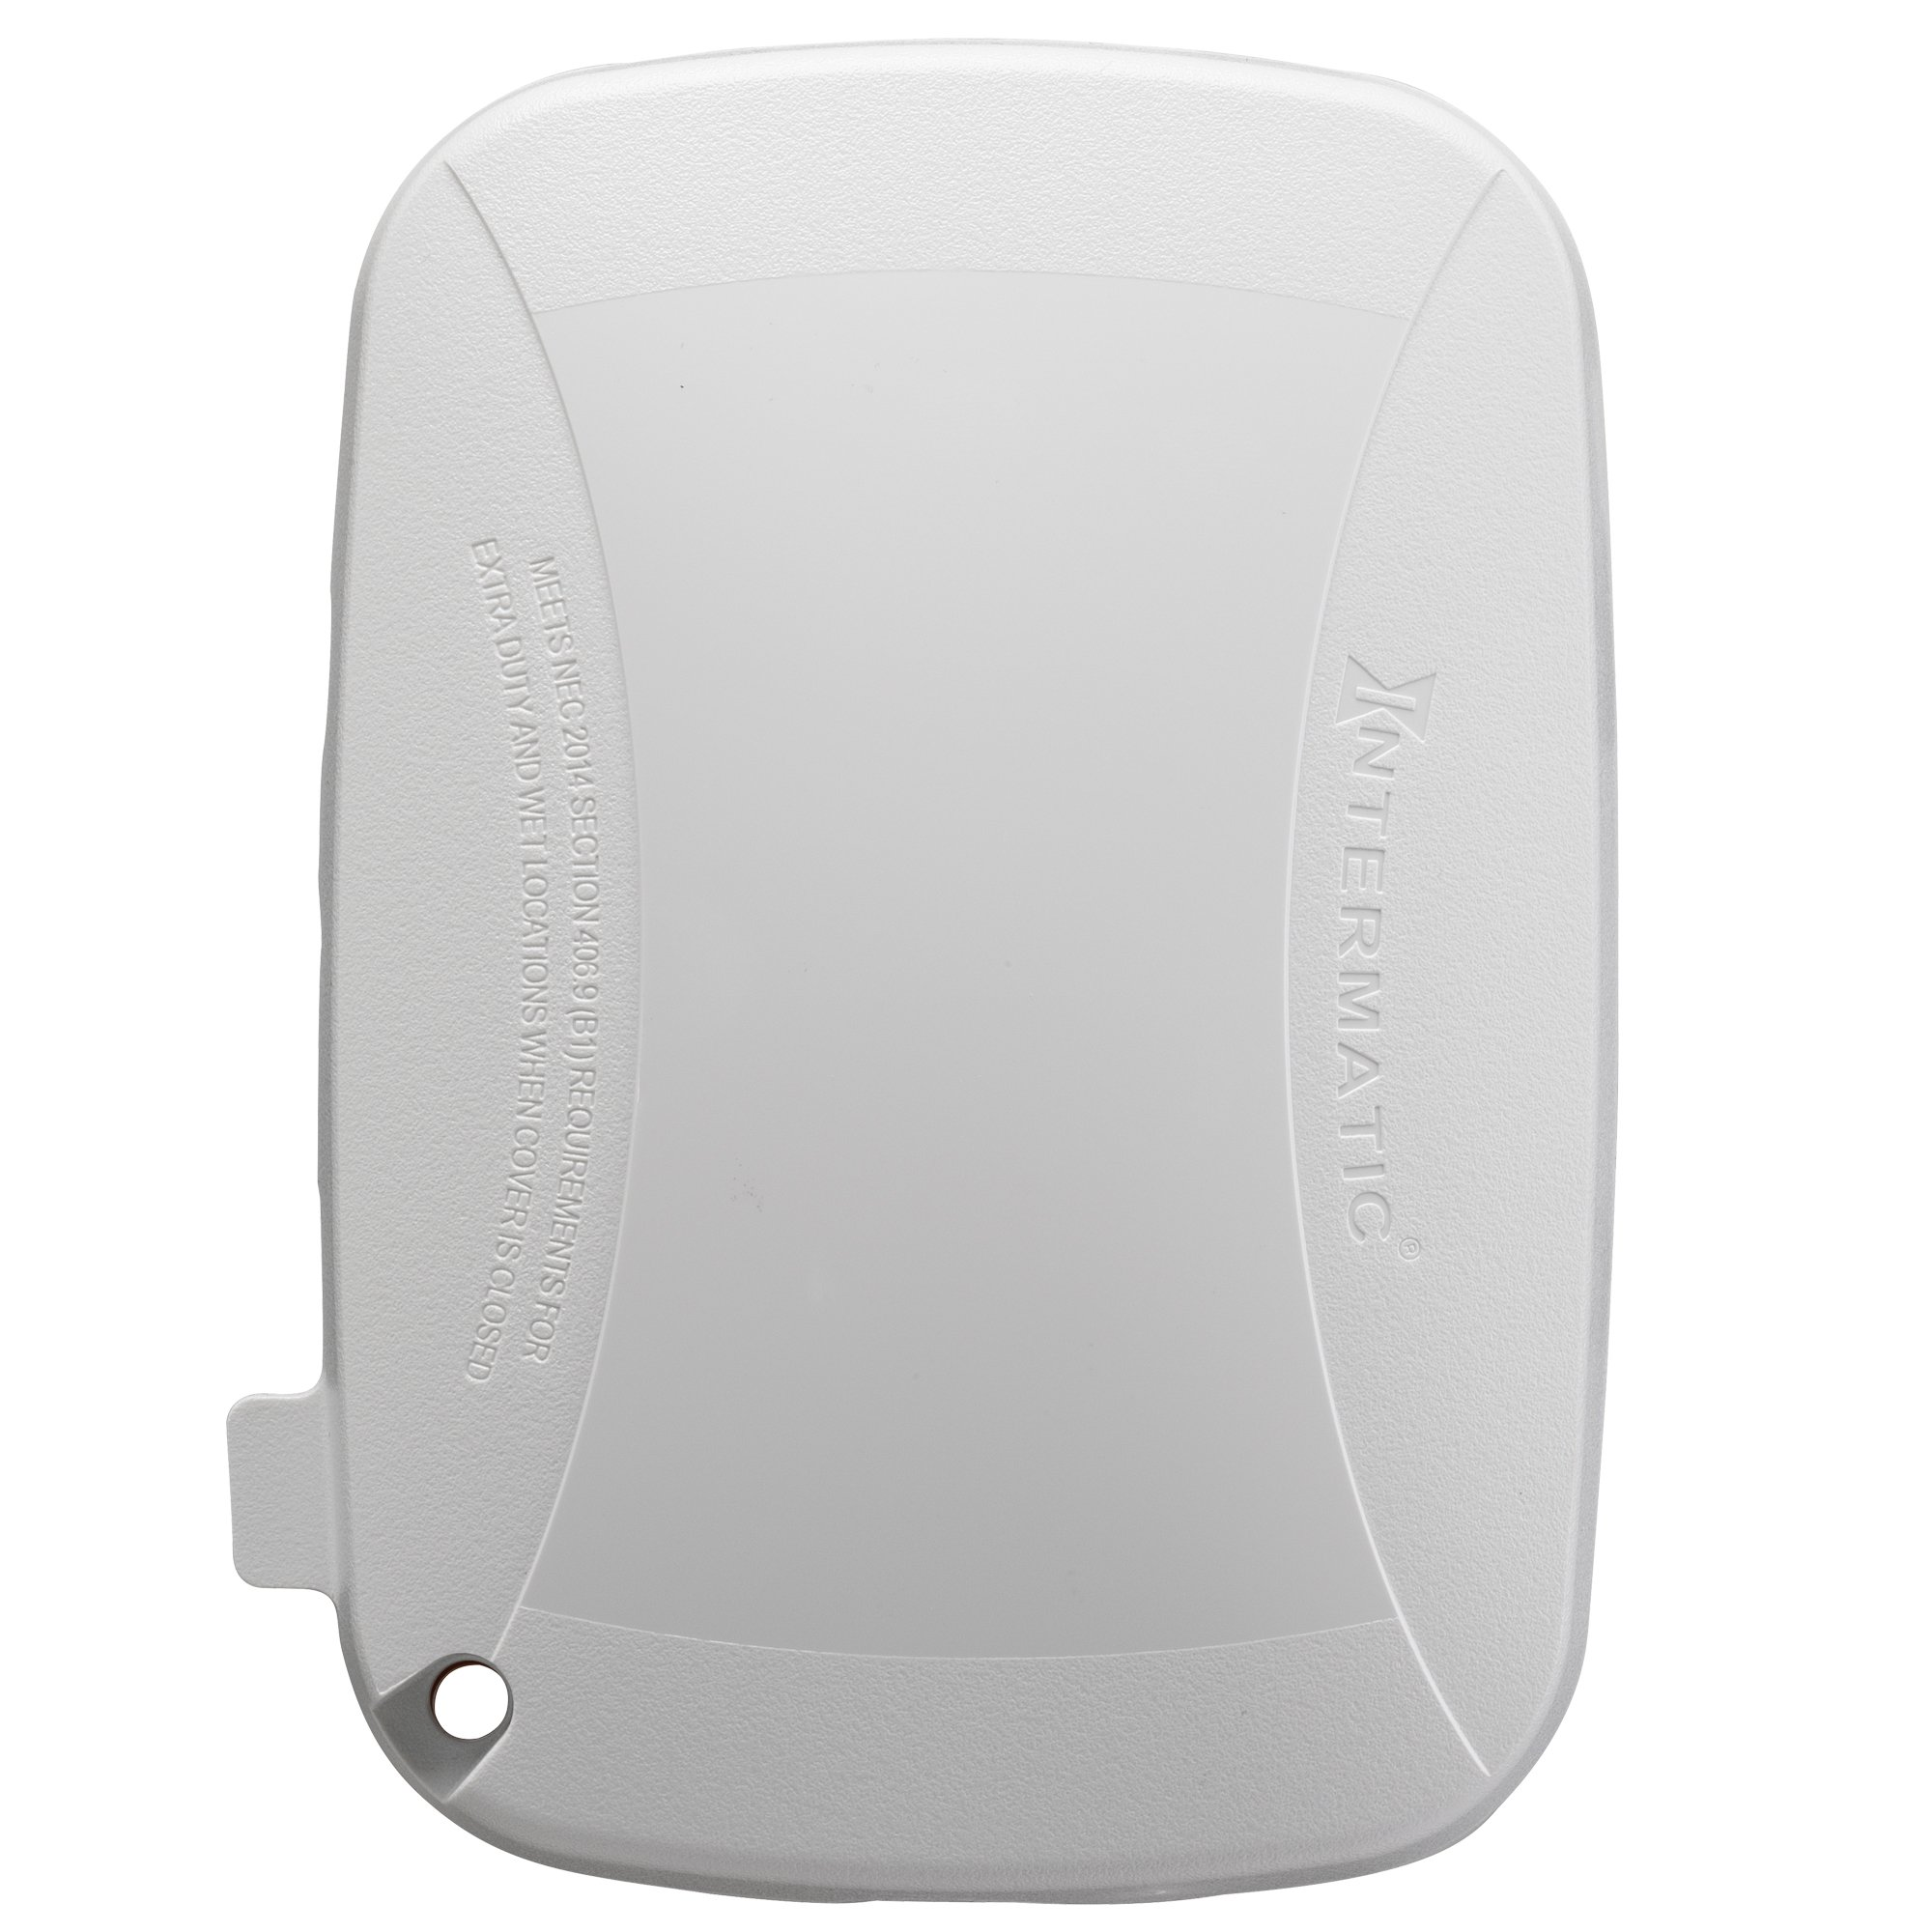 Intermatic WP5100W Extra Duty Plastic Weatherproof Cover, 2.75-Inch Single Gang, White